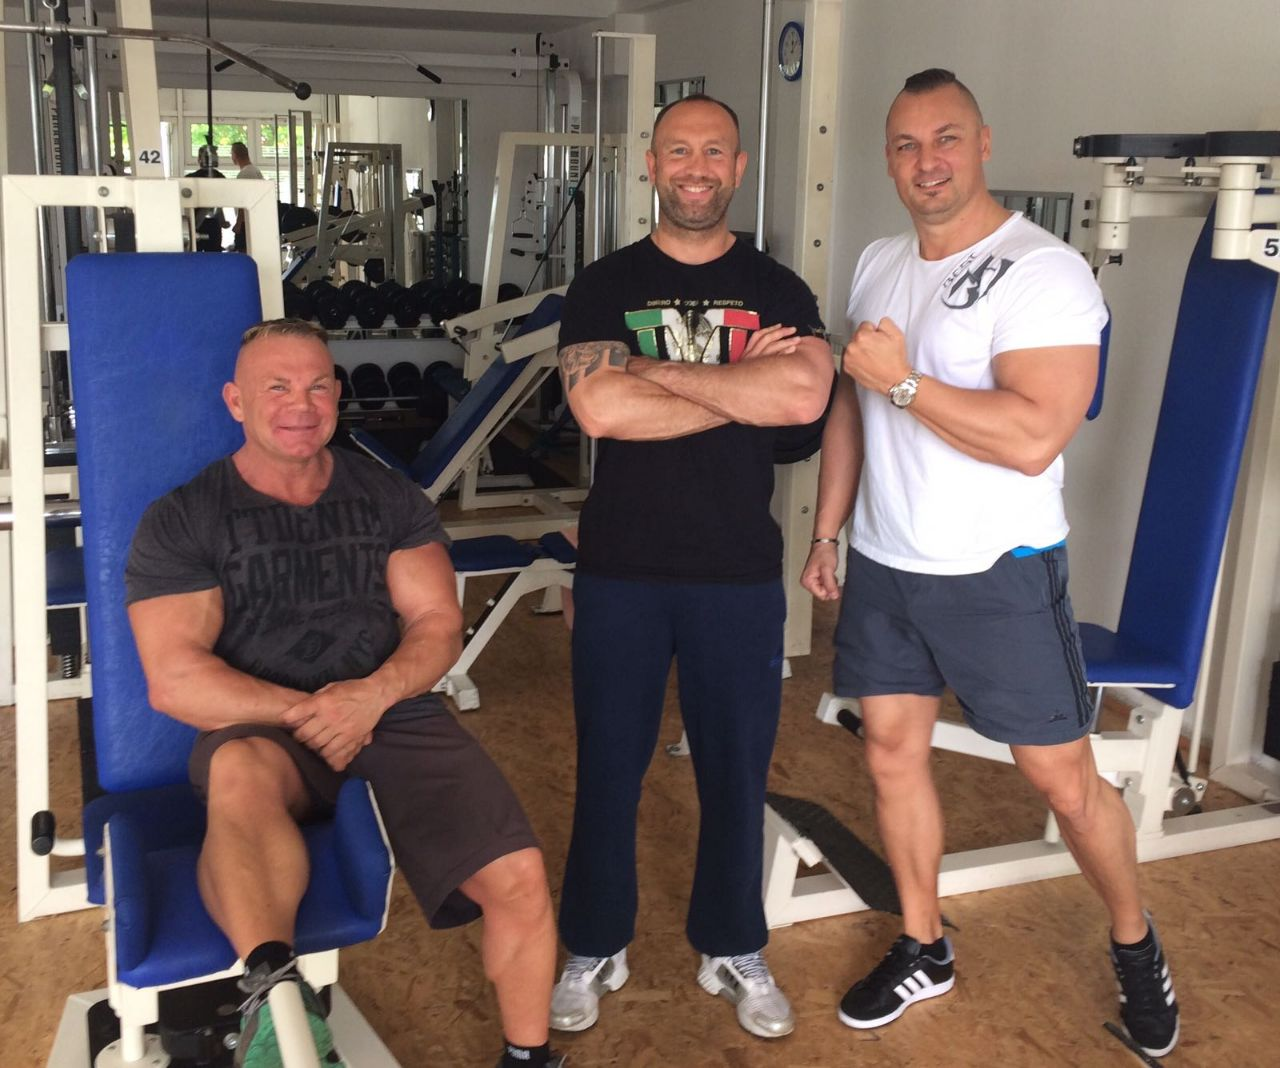 Personaltraining Bad Saarow Berlin angebote j jpt pt frank aline